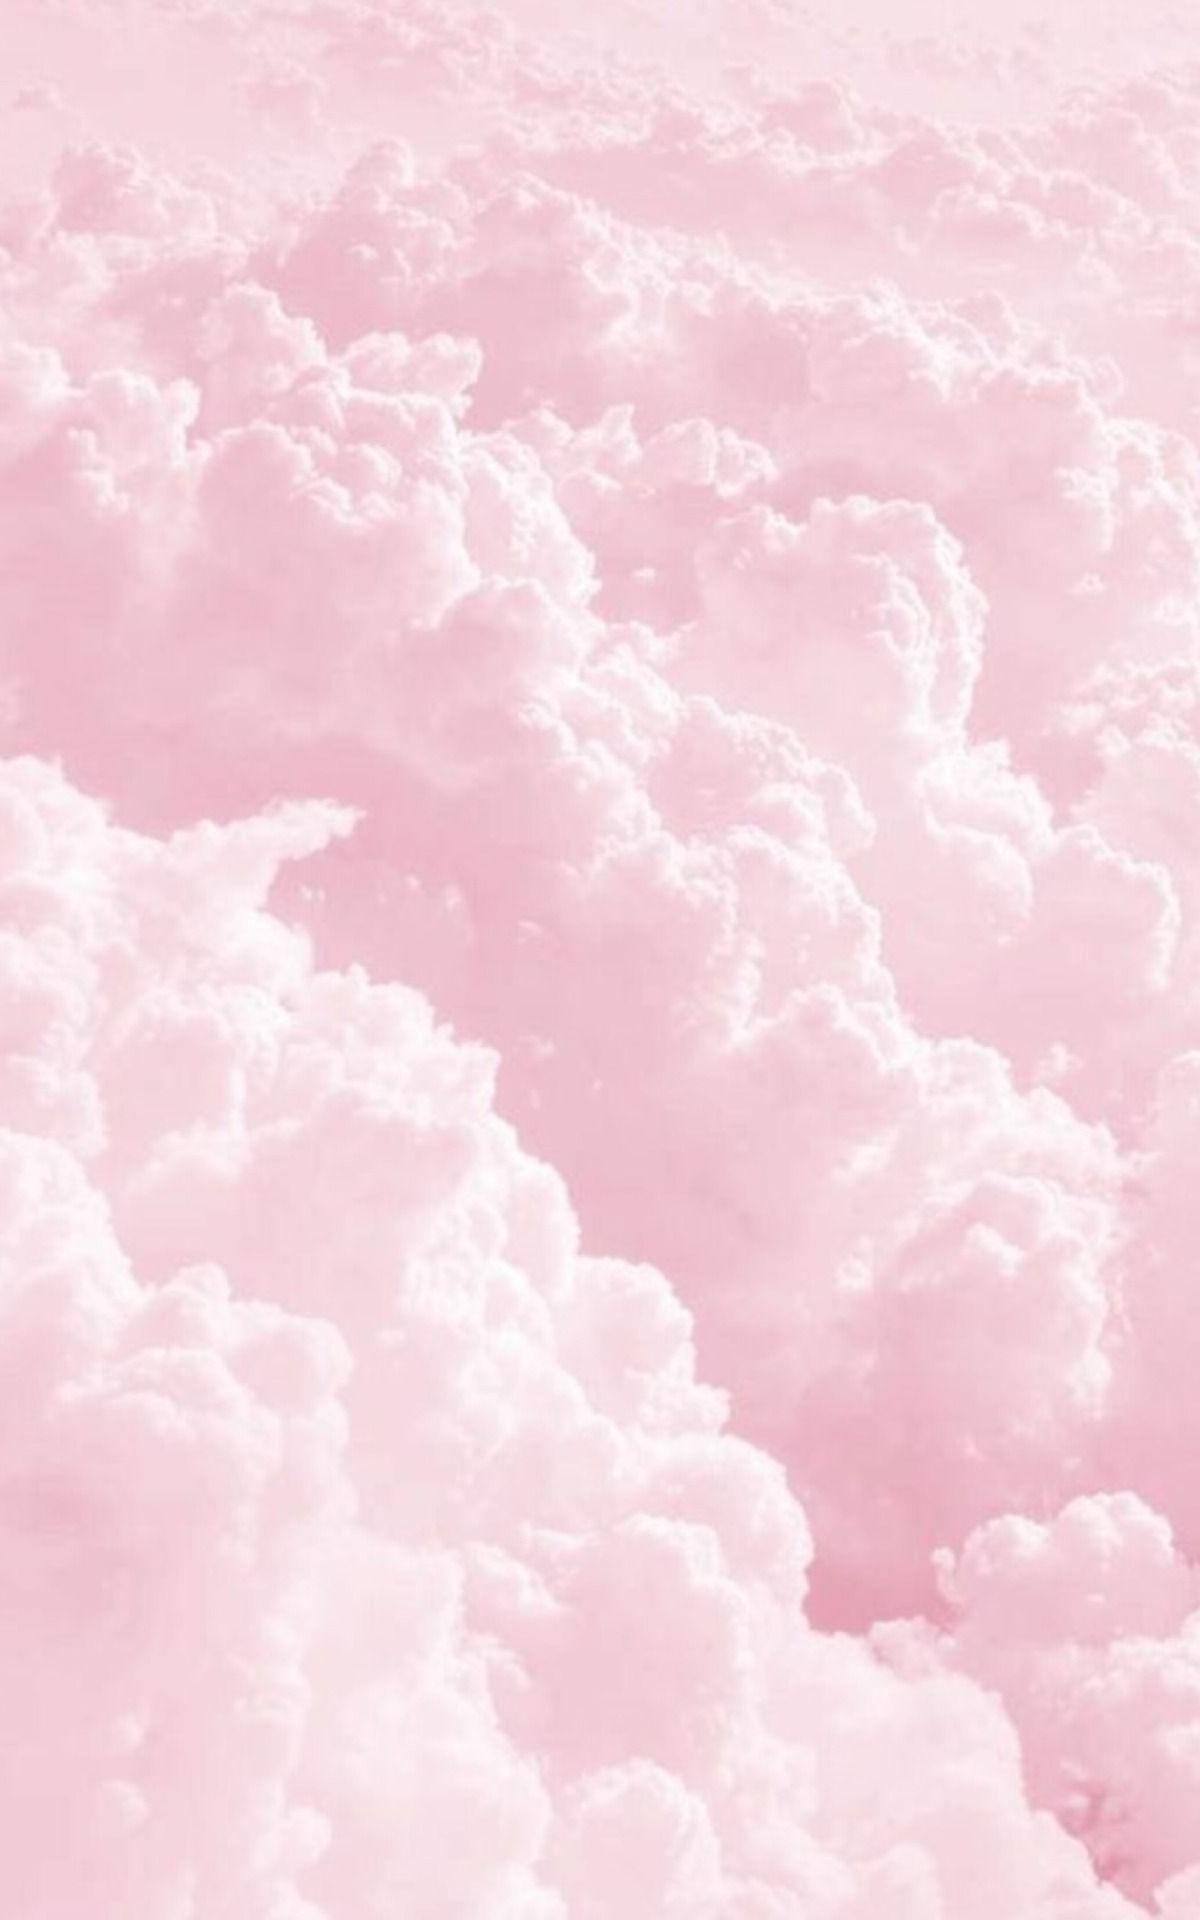 Free download Admit it you always wanted to taste the clouds